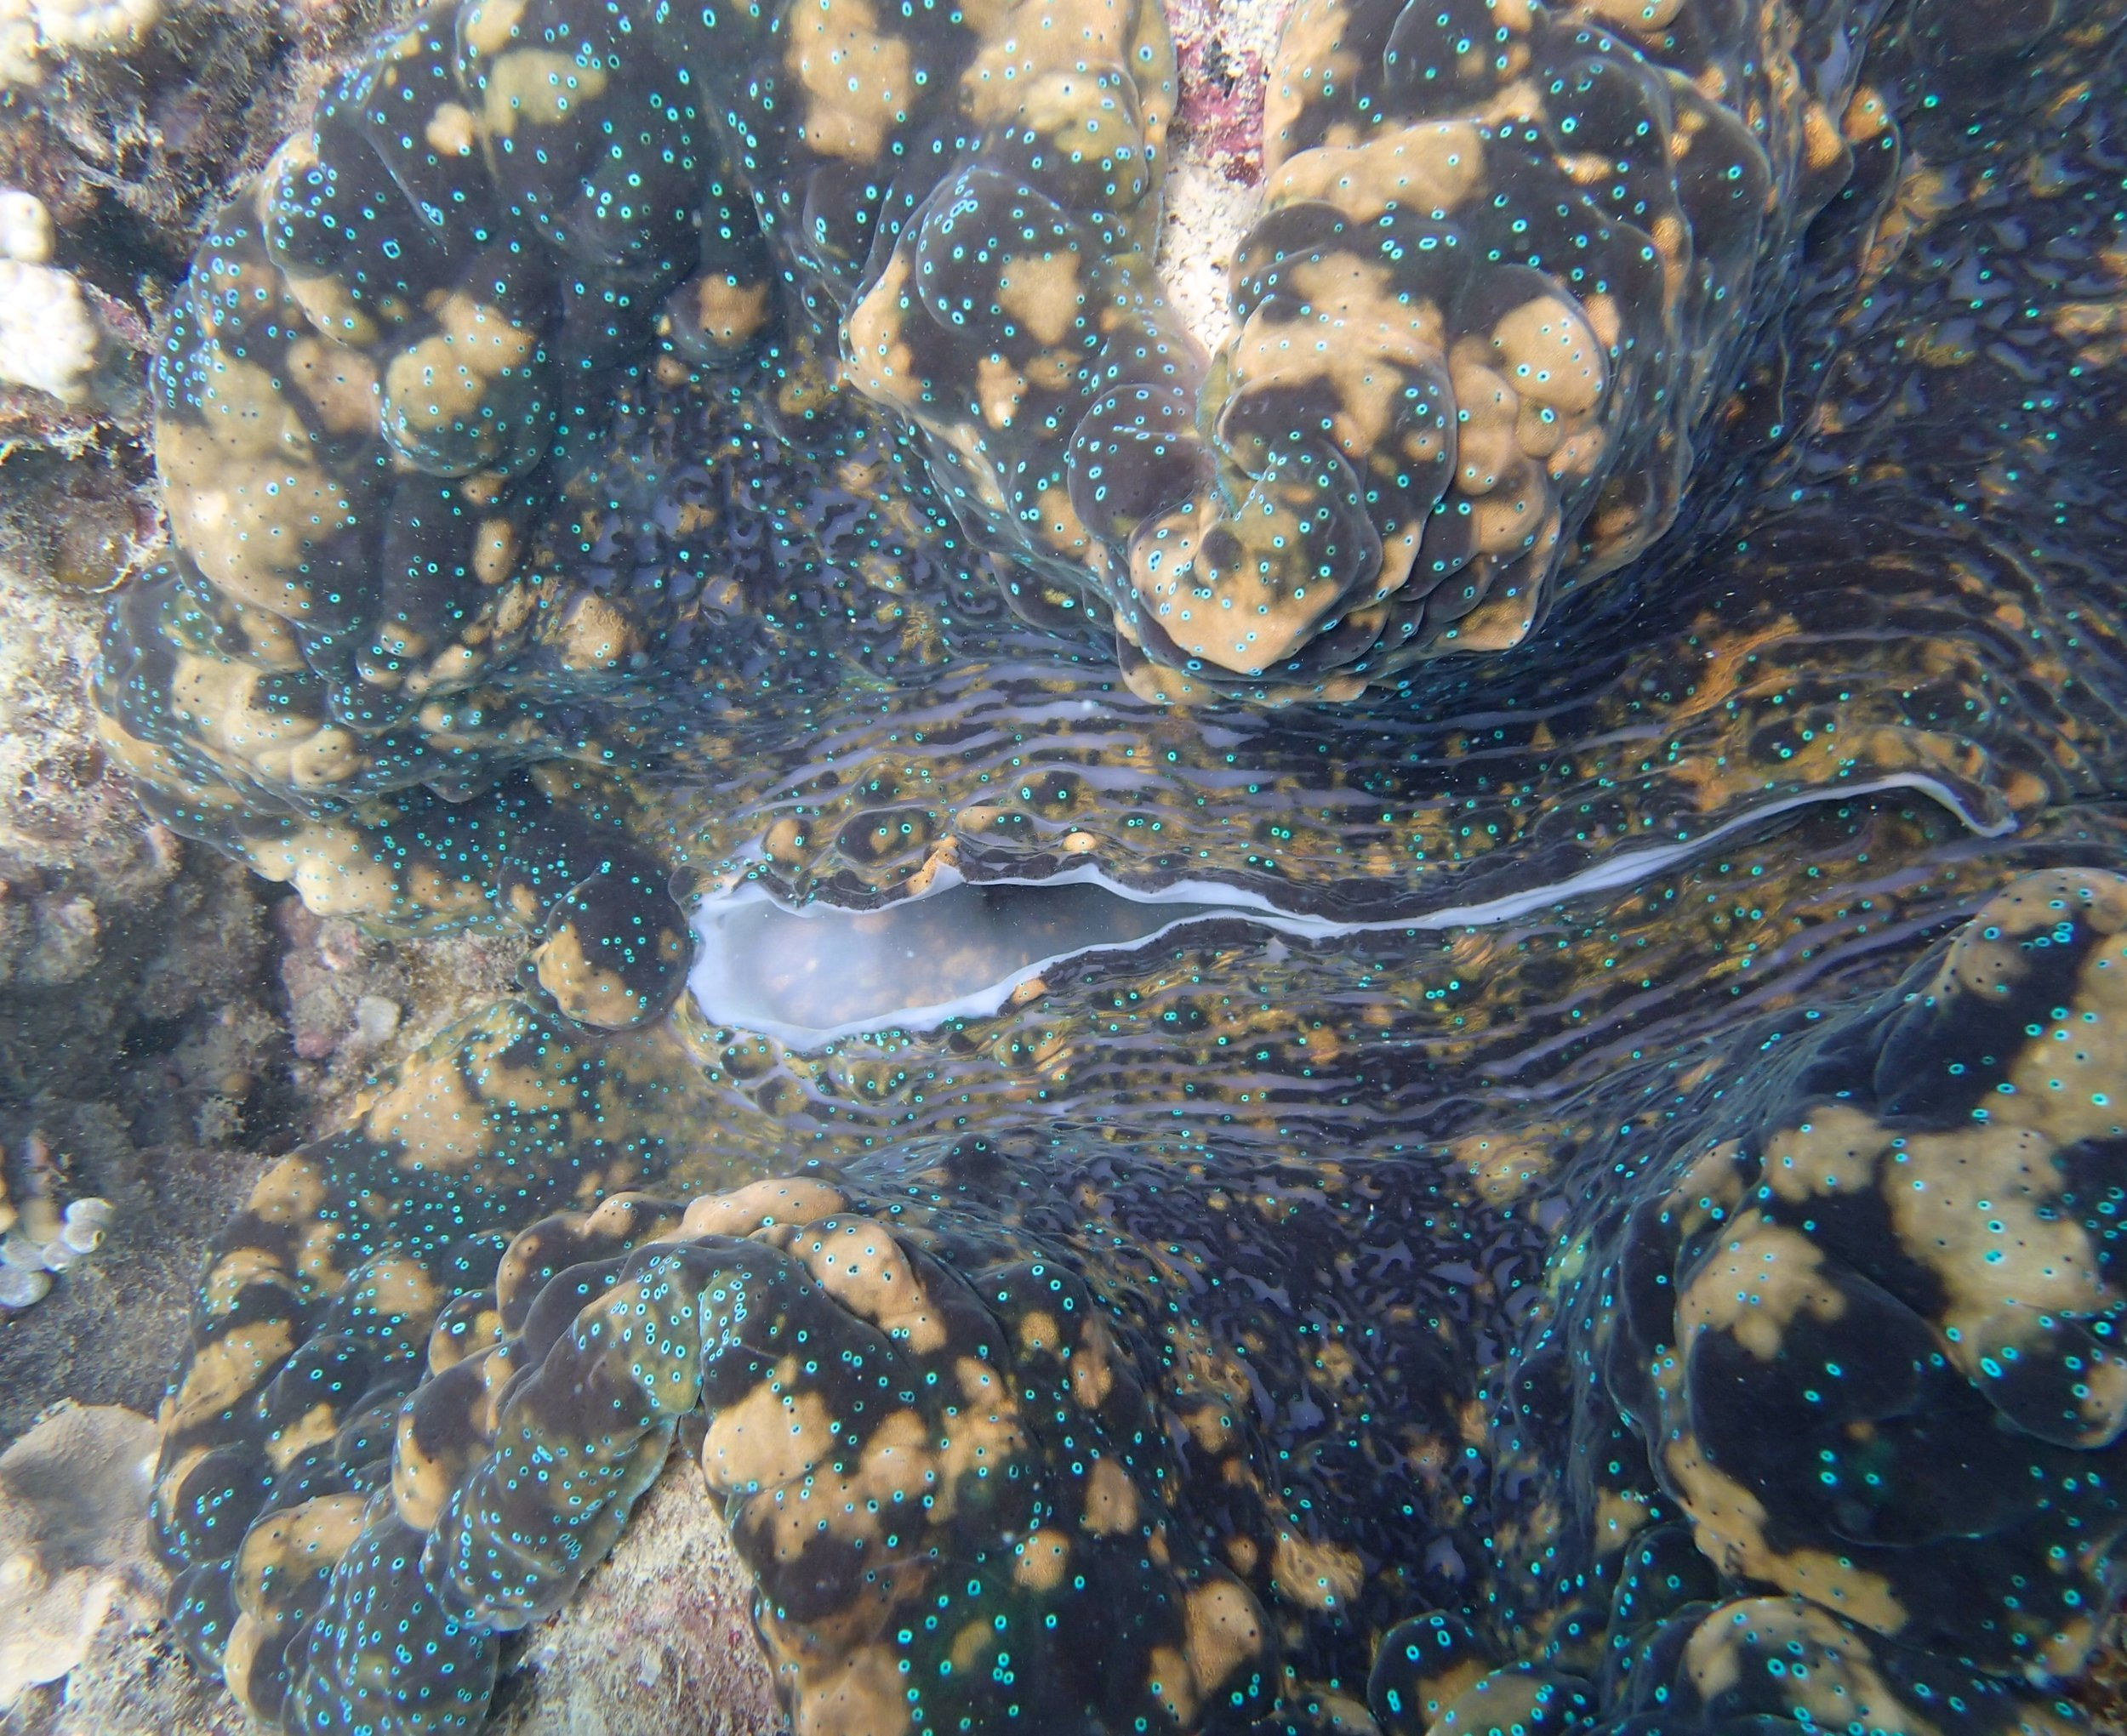 monster giant clam.jpg